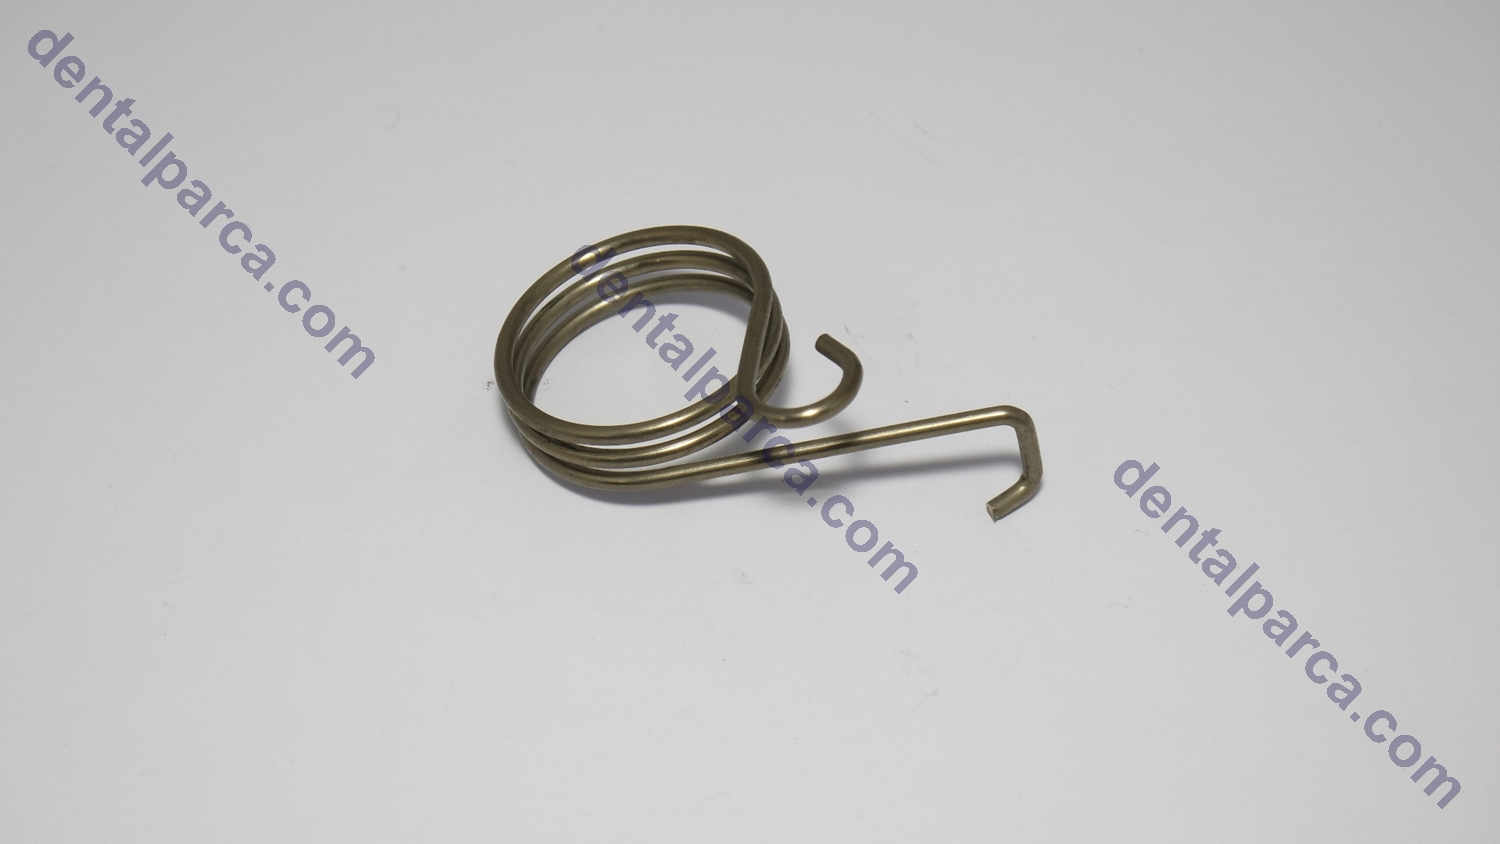 HANDLE SPRING Ø2 AISI304 REV_2 resmi